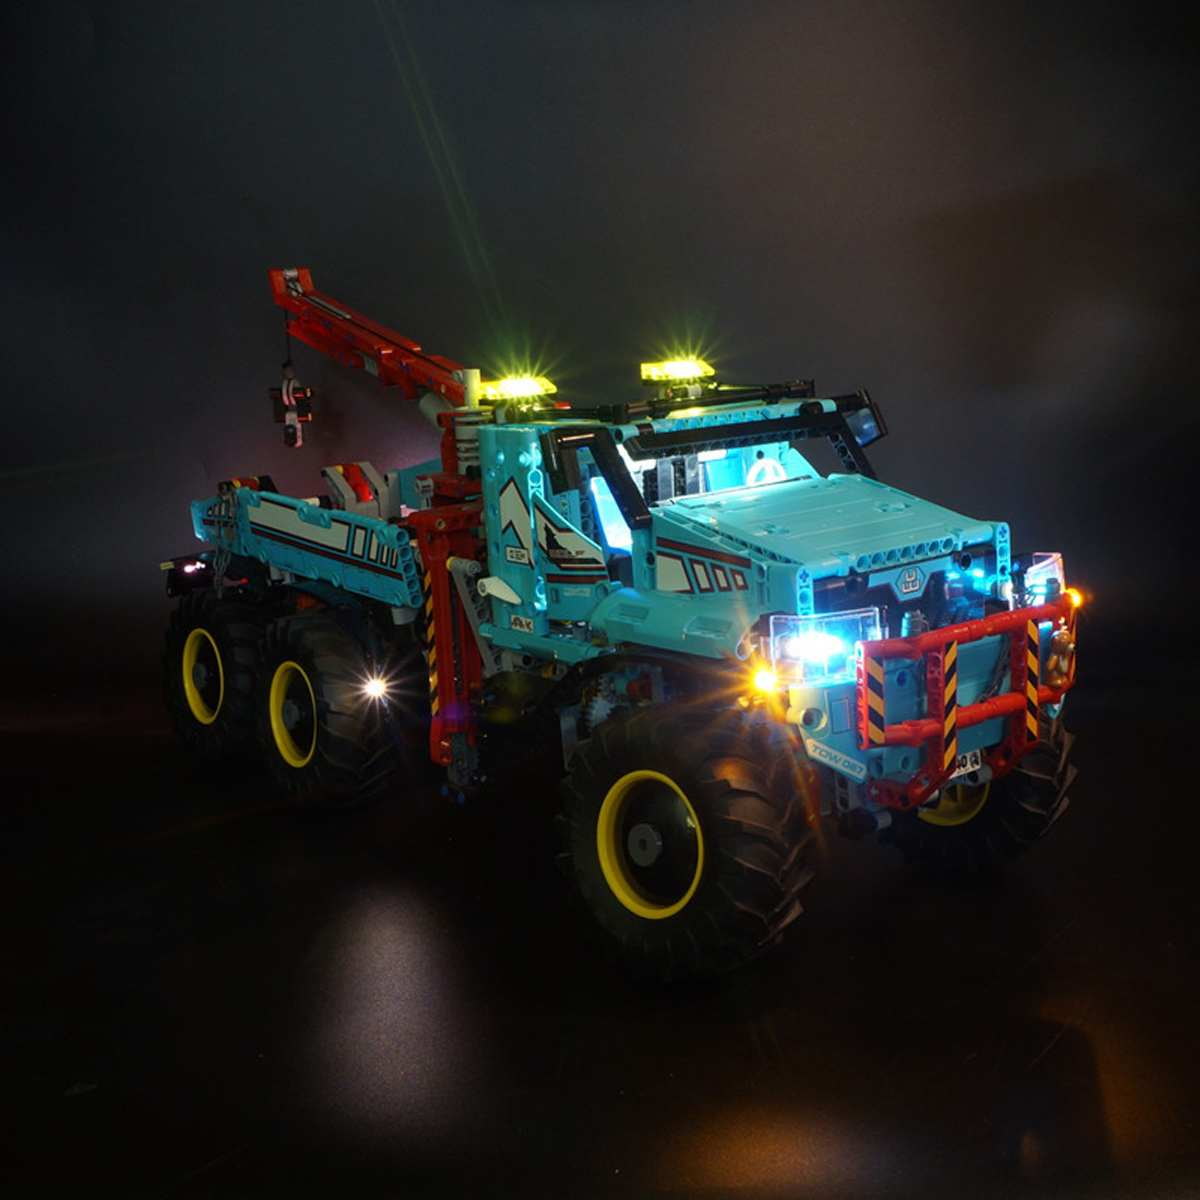 LED Light Up Kit for <font><b>LEGO</b></font> for <font><b>42070</b></font> Technic for Ultimate All Terrain Truck 6X6 Blocks Toy Bricks (Only Light Included) image